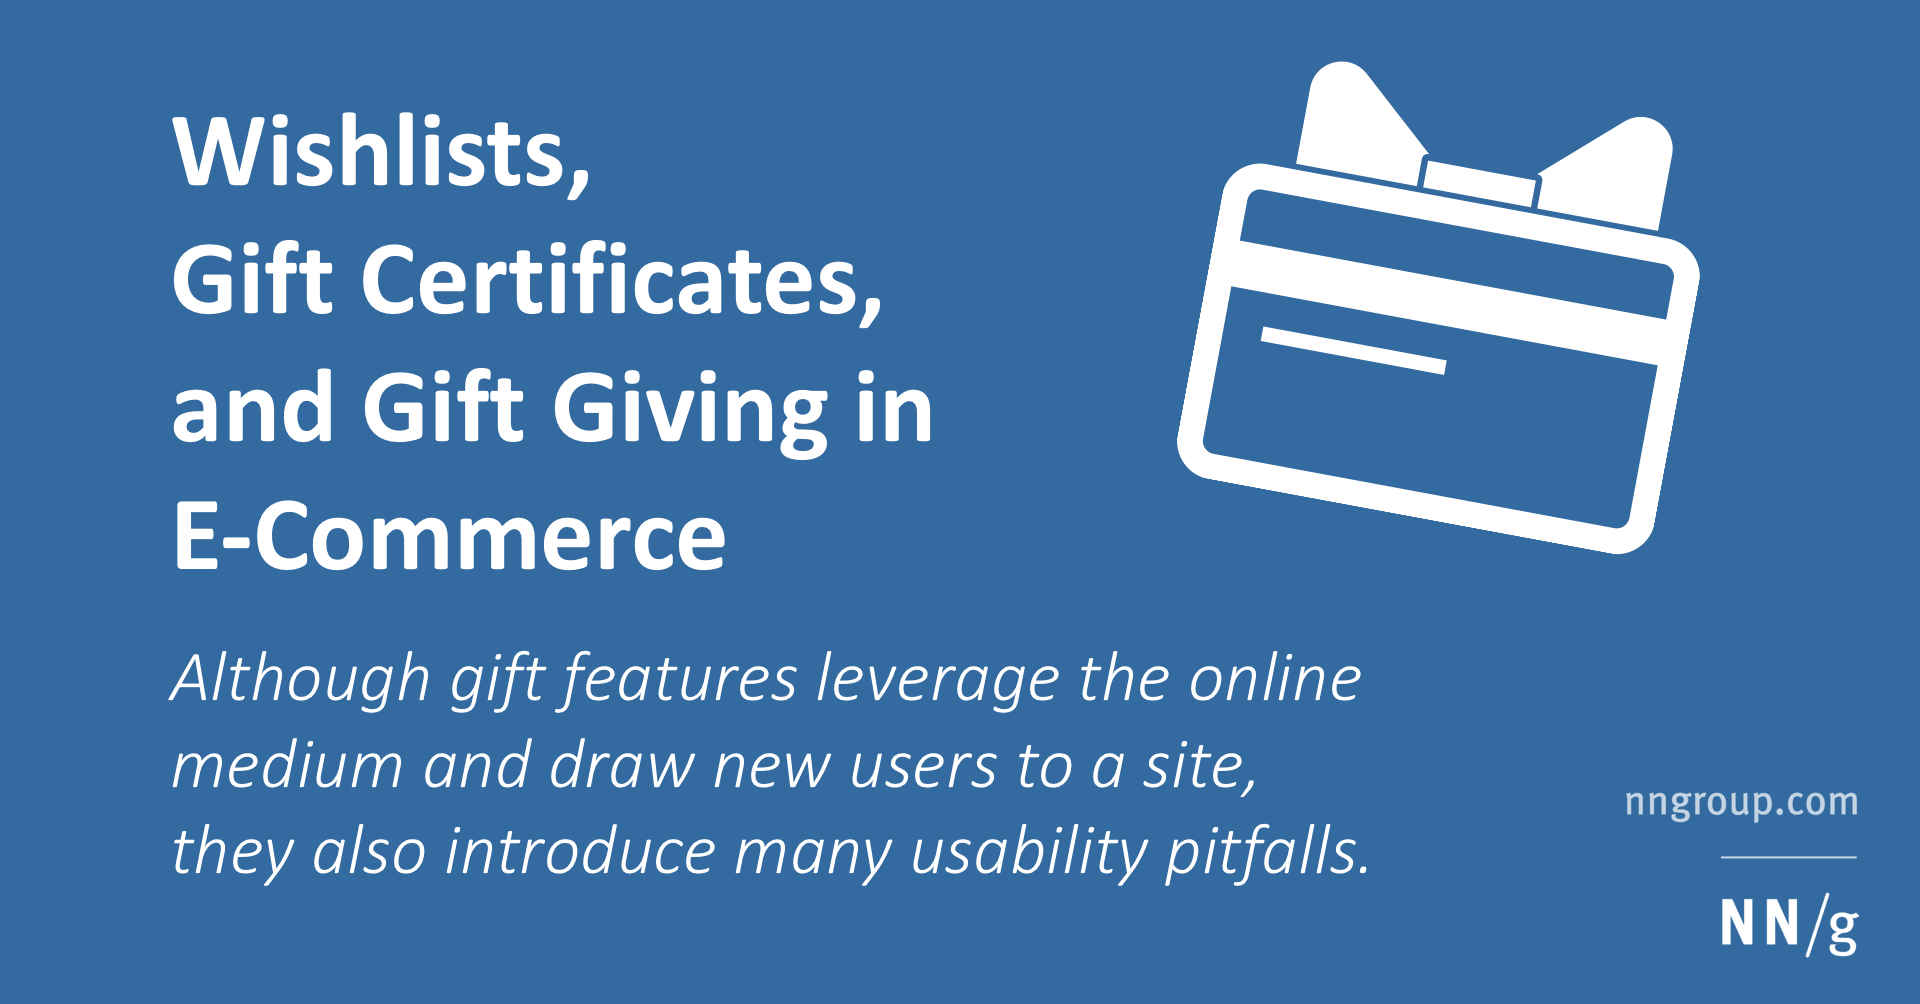 Wishlists Gift Certificates And Gift Giving In E Commerce